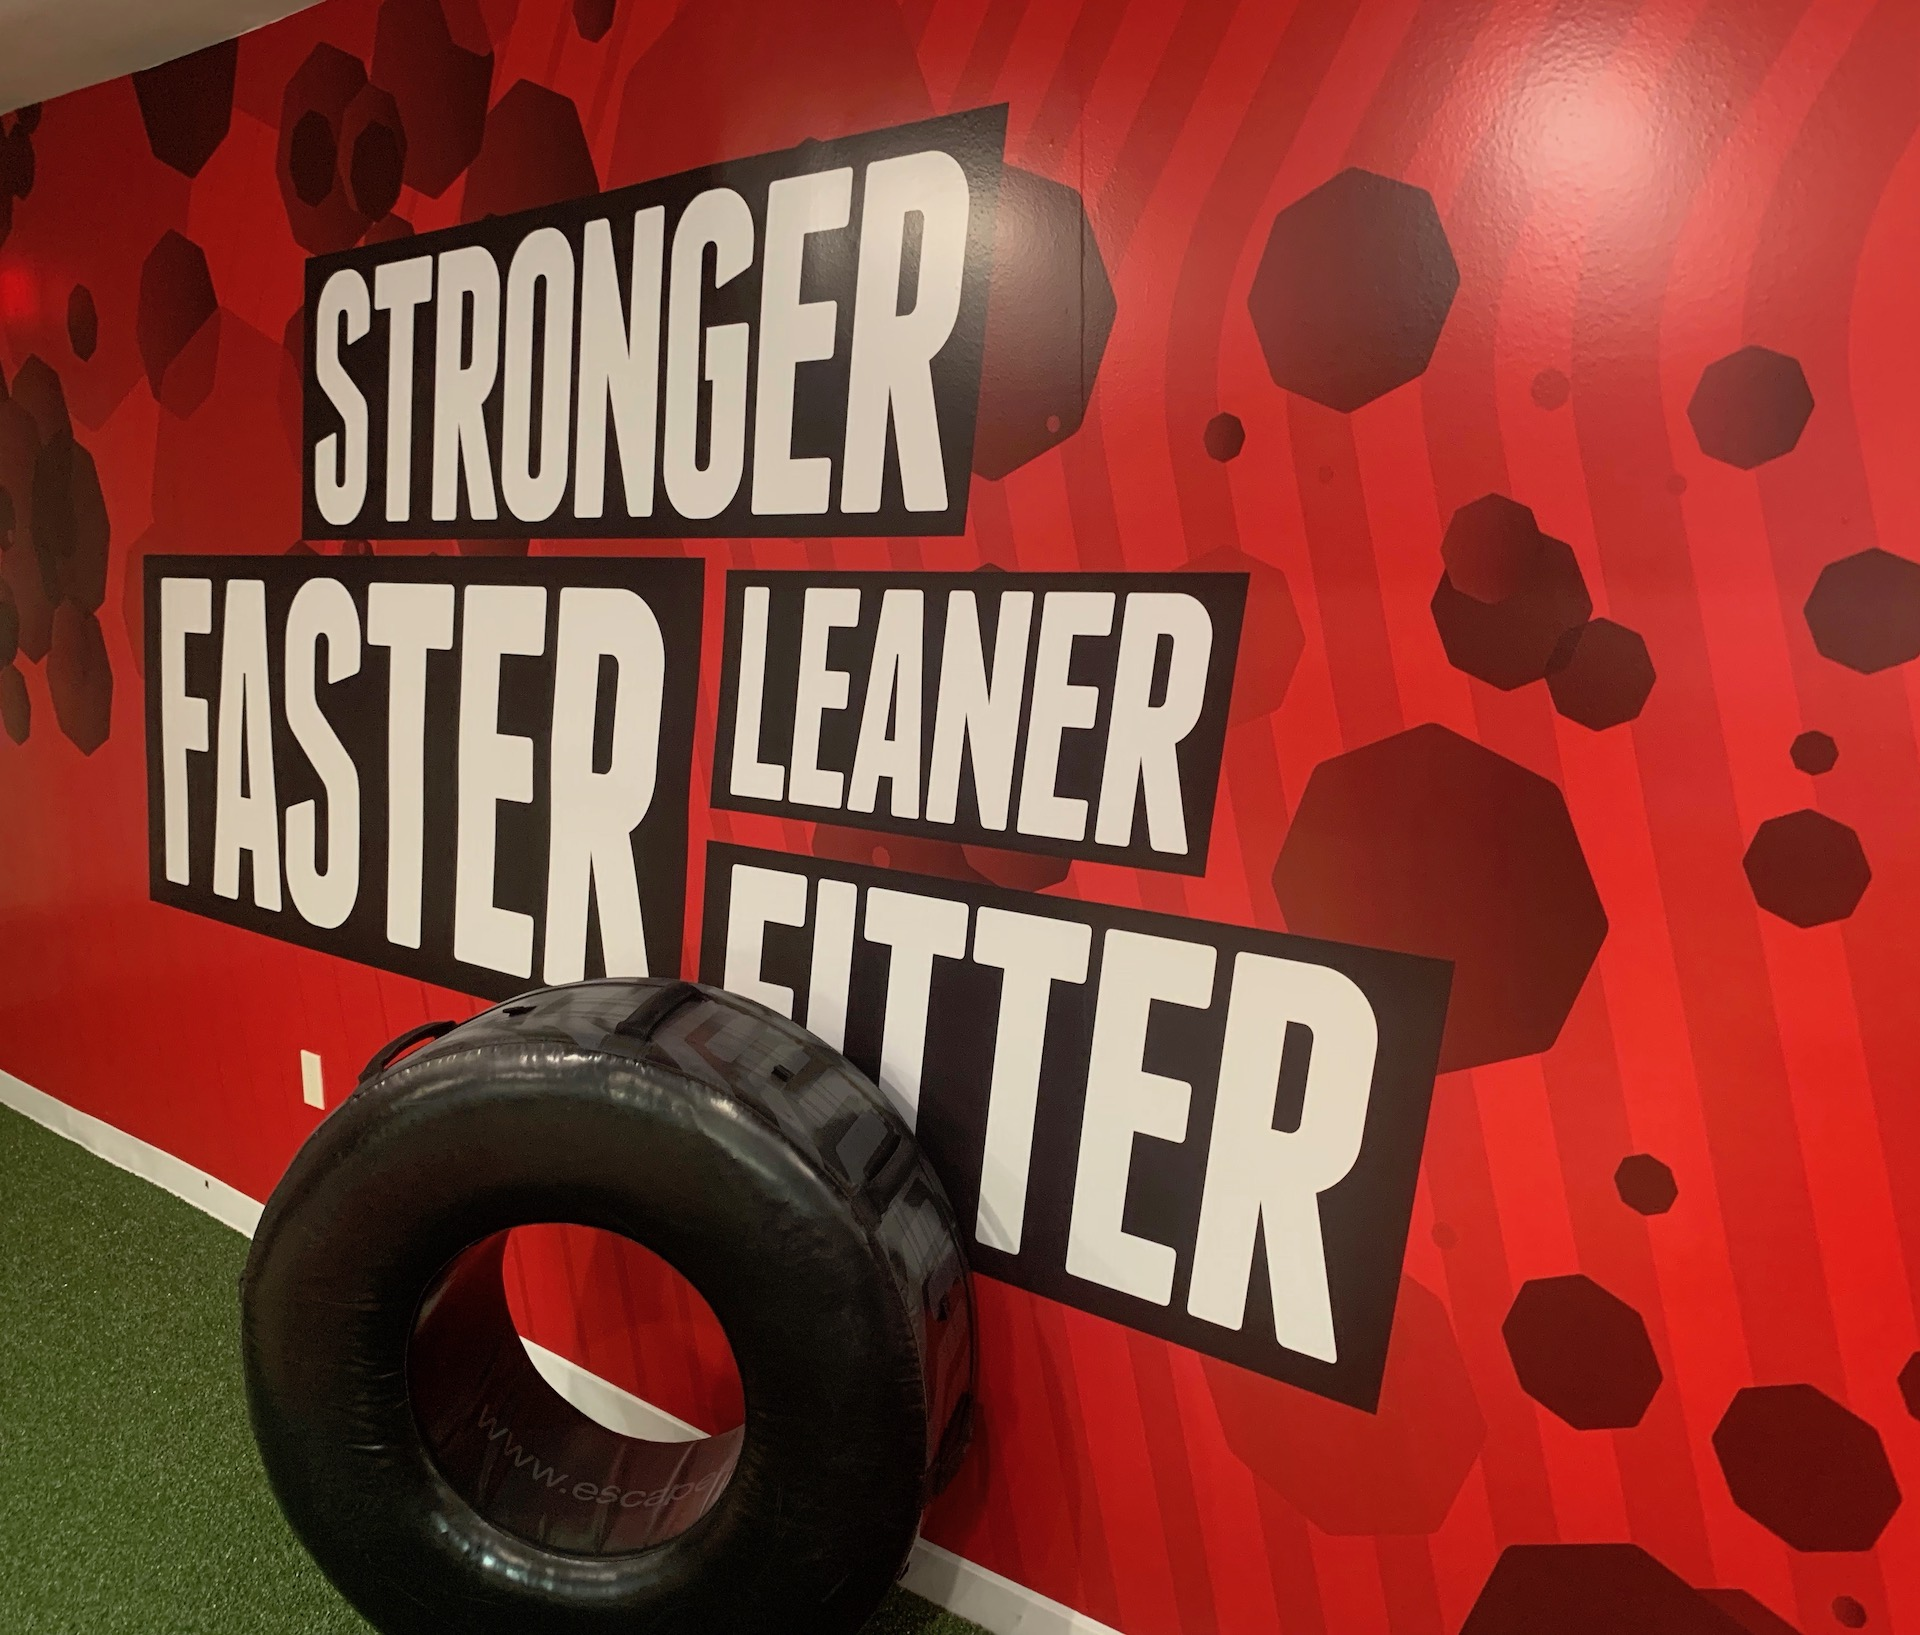 Stronger faster leaner fitter sign